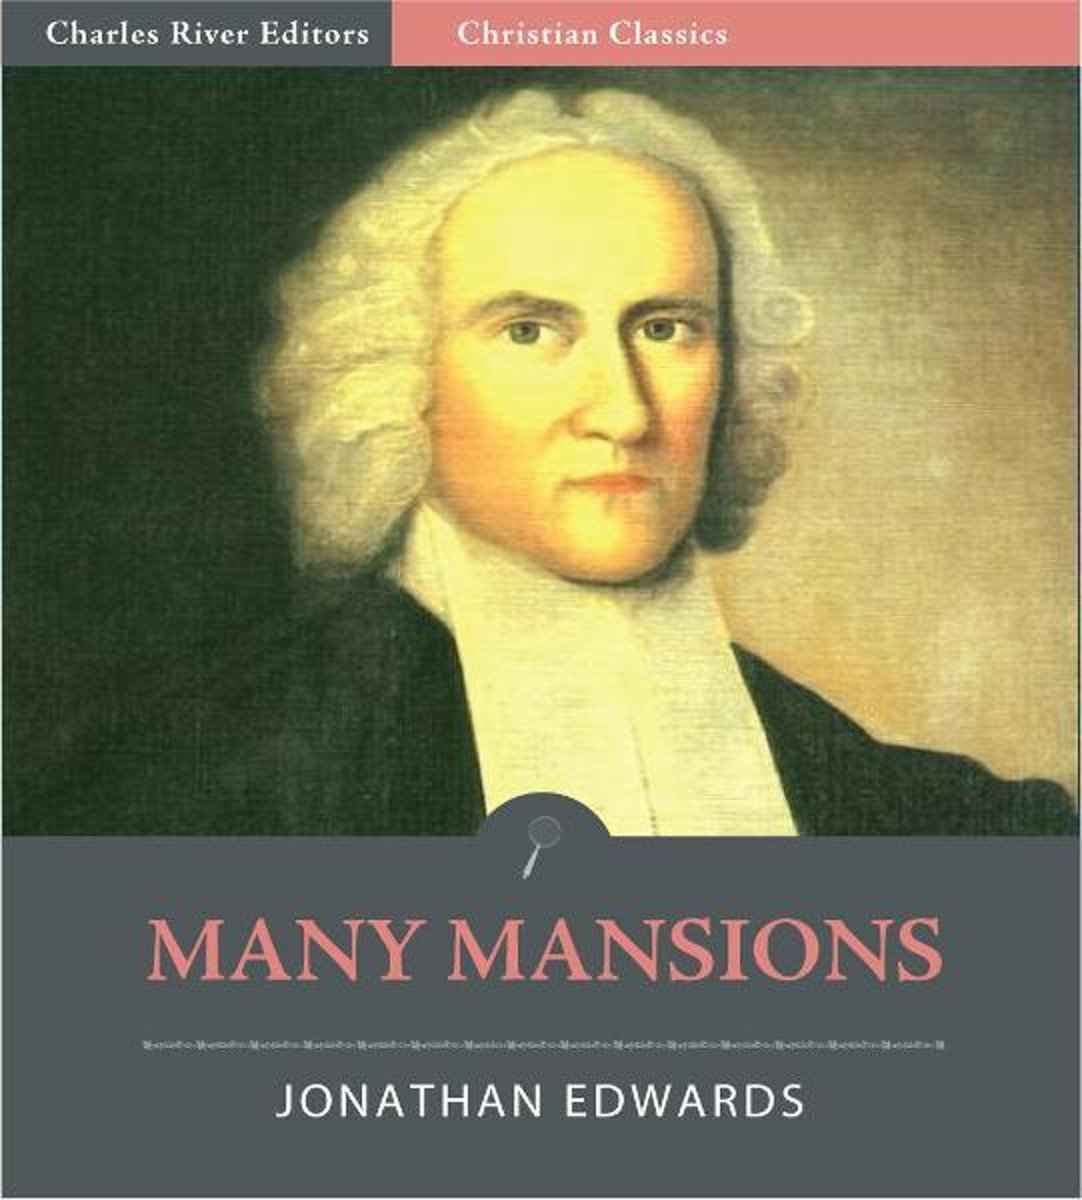 Many Mansions (Illustrated Edition)